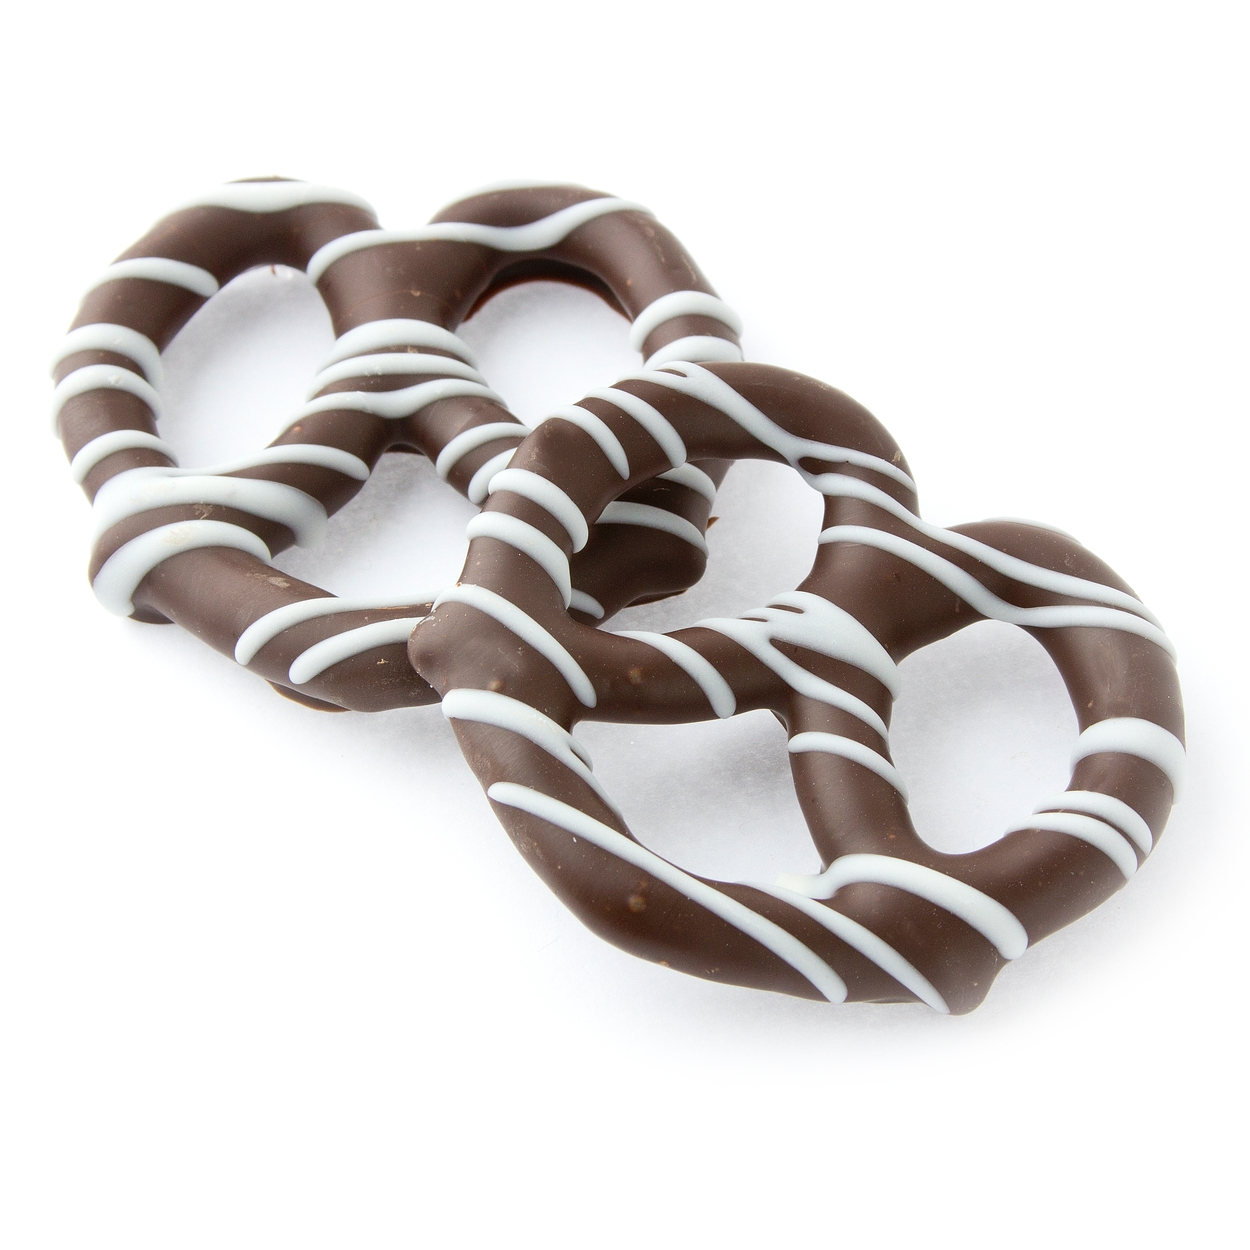 Chocolate & Yogurt Covered Pretzels – Buy in Bulk • Oh! Nuts®